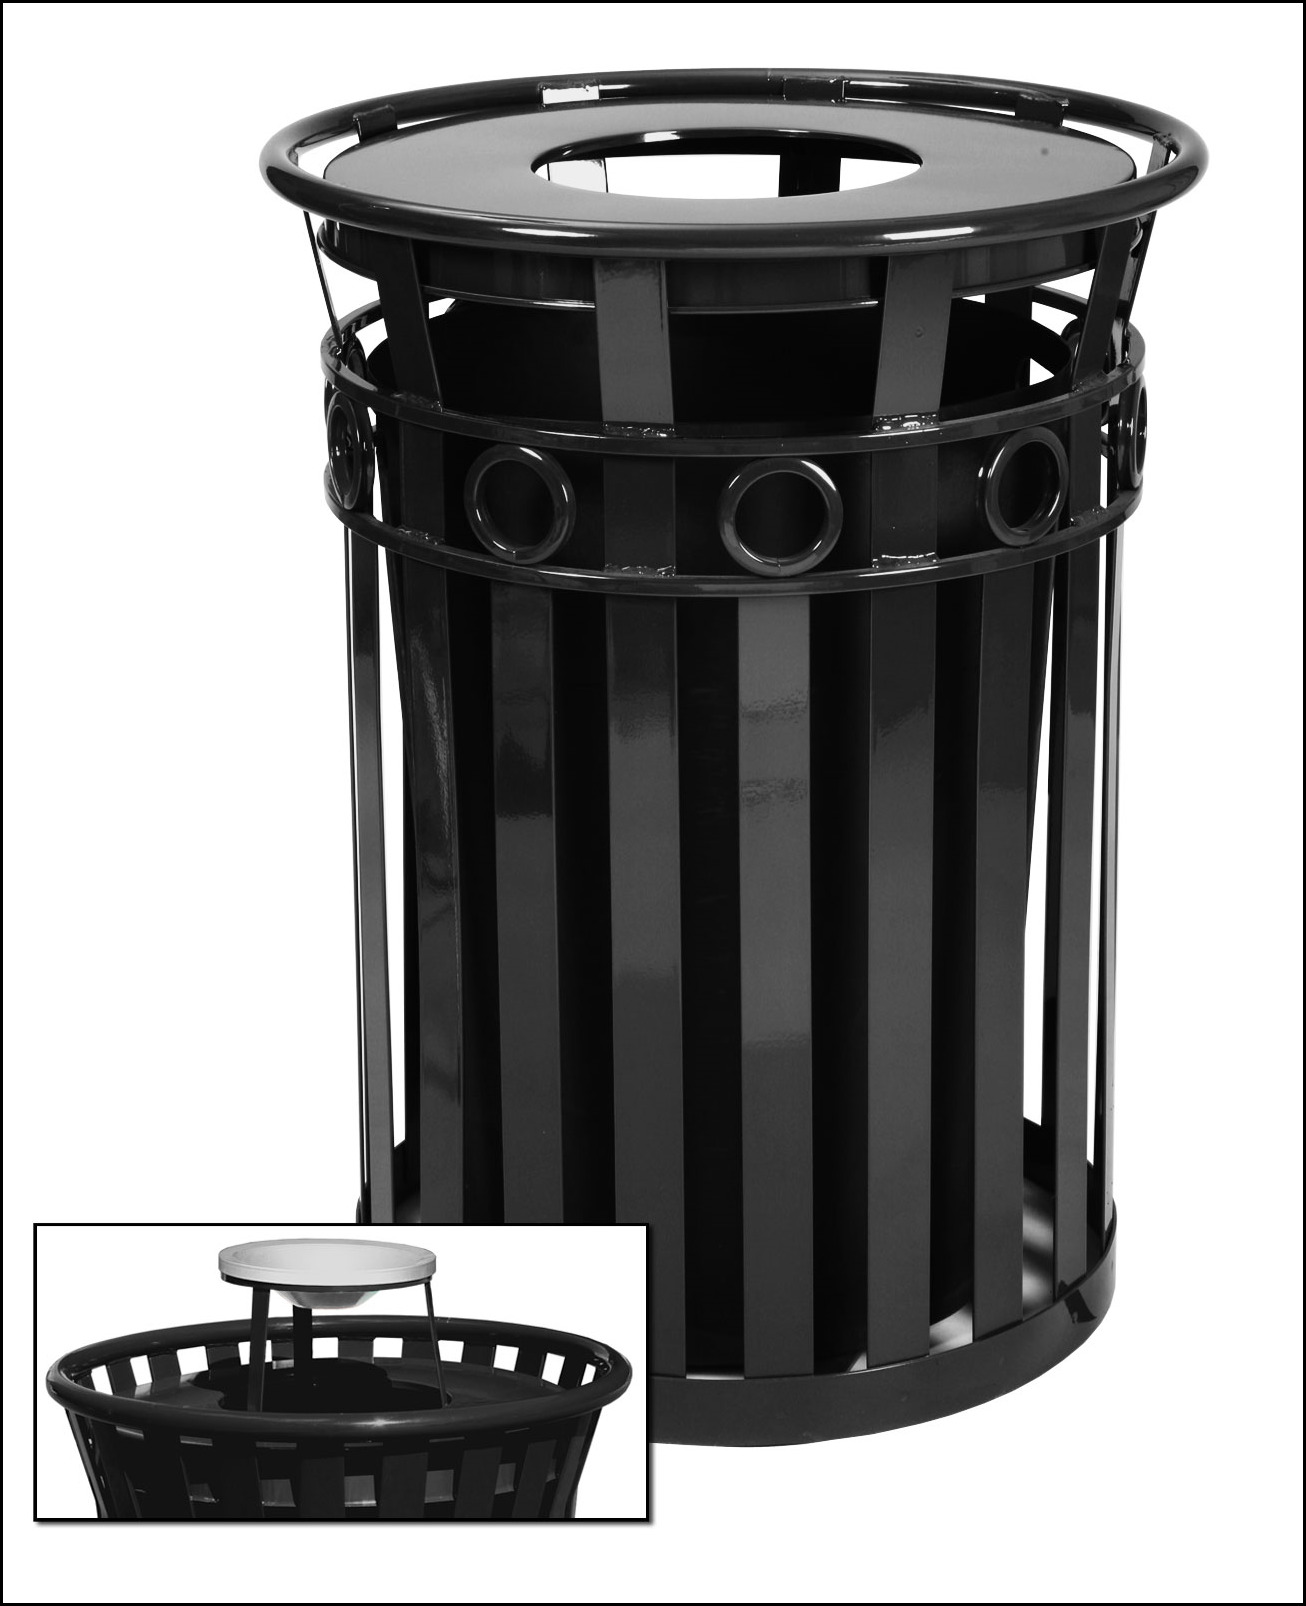 ... Trash Can And This Page Shows The Closest Product Matches Now We Have  For Outside Ornamental Trash Can To Buy On Line. Discretely Store Outdoor  Objects ...